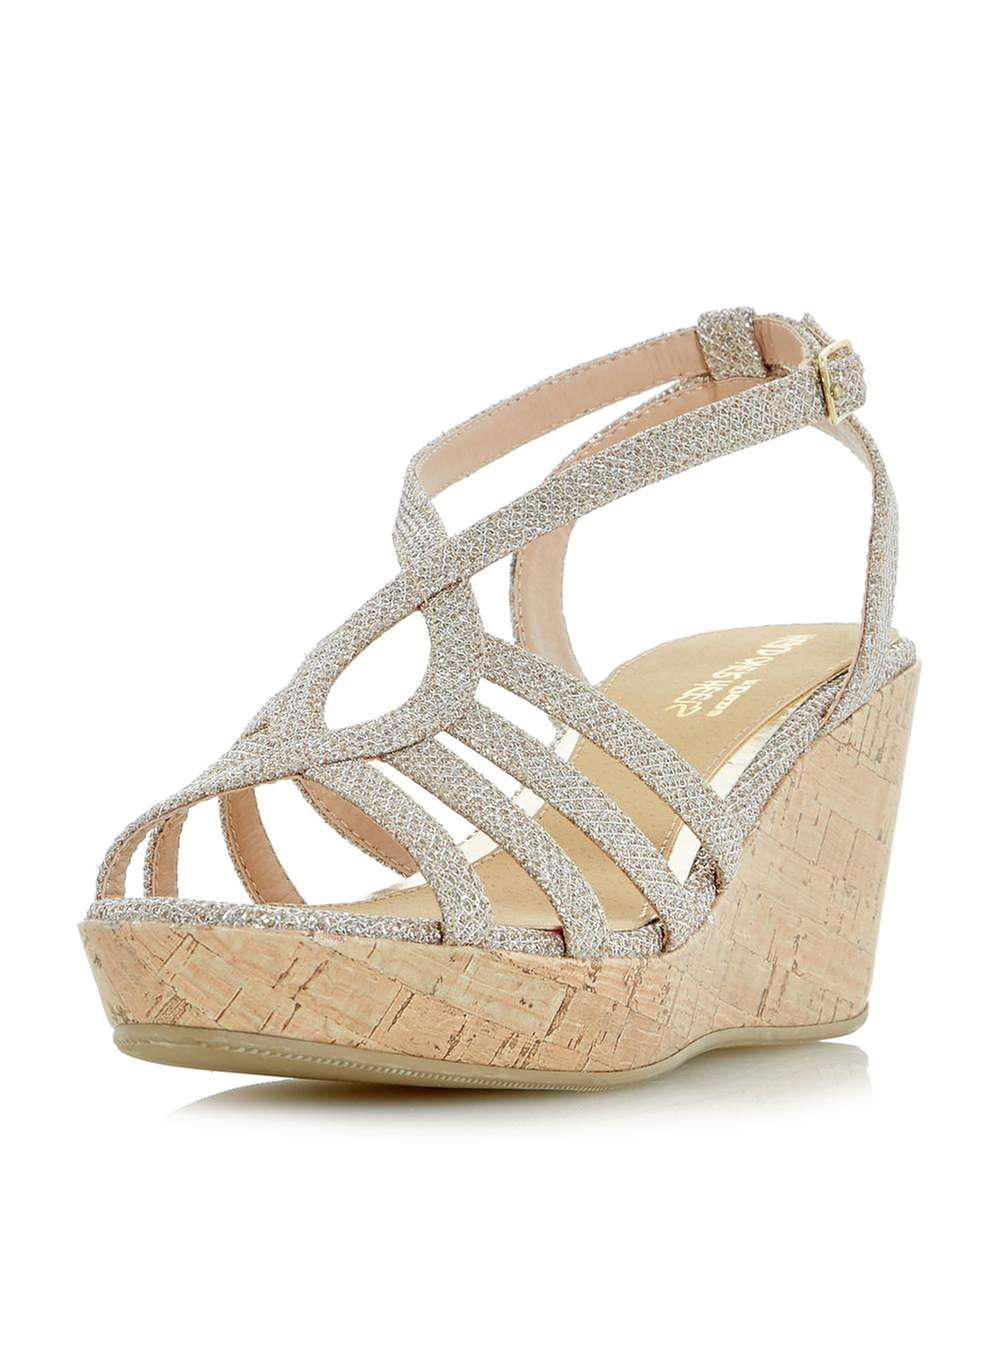 bc07ff417 Gallery. Previously sold at  Dorothy Perkins · Women s Gold Sandals ...